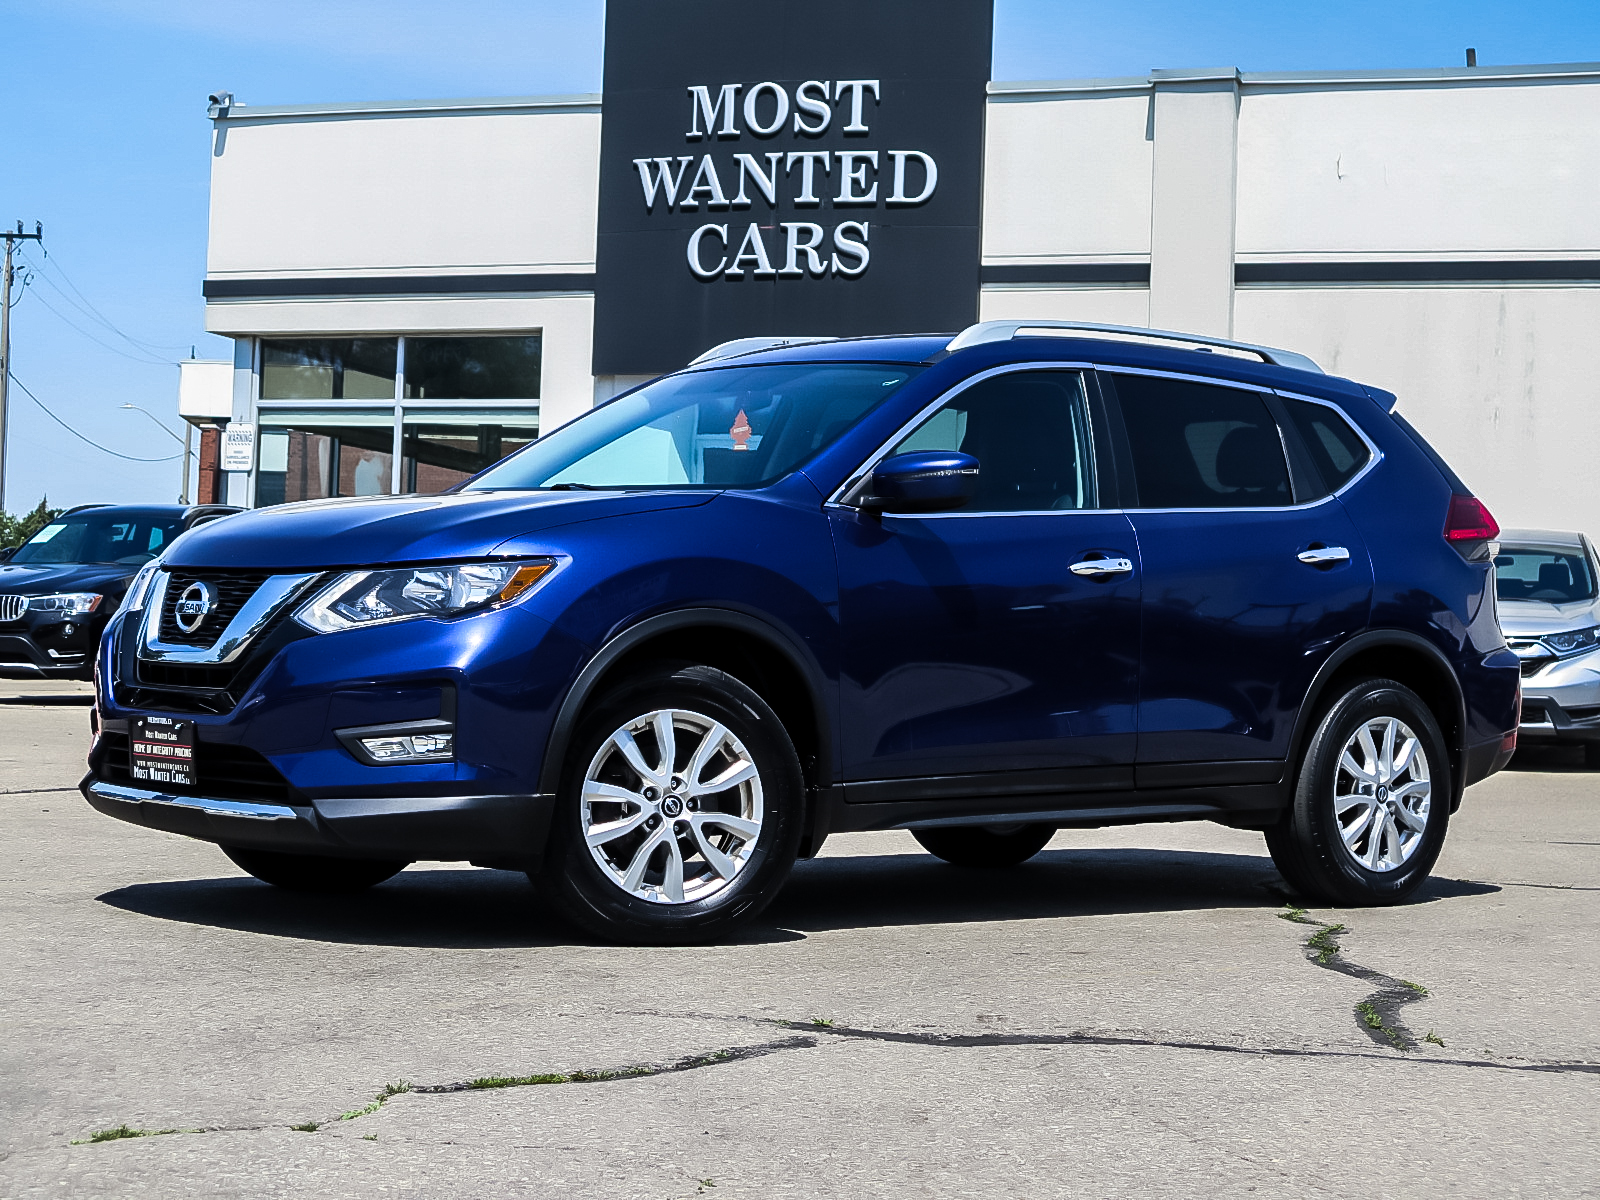 used 2017 Nissan Rogue car, priced at $20,492